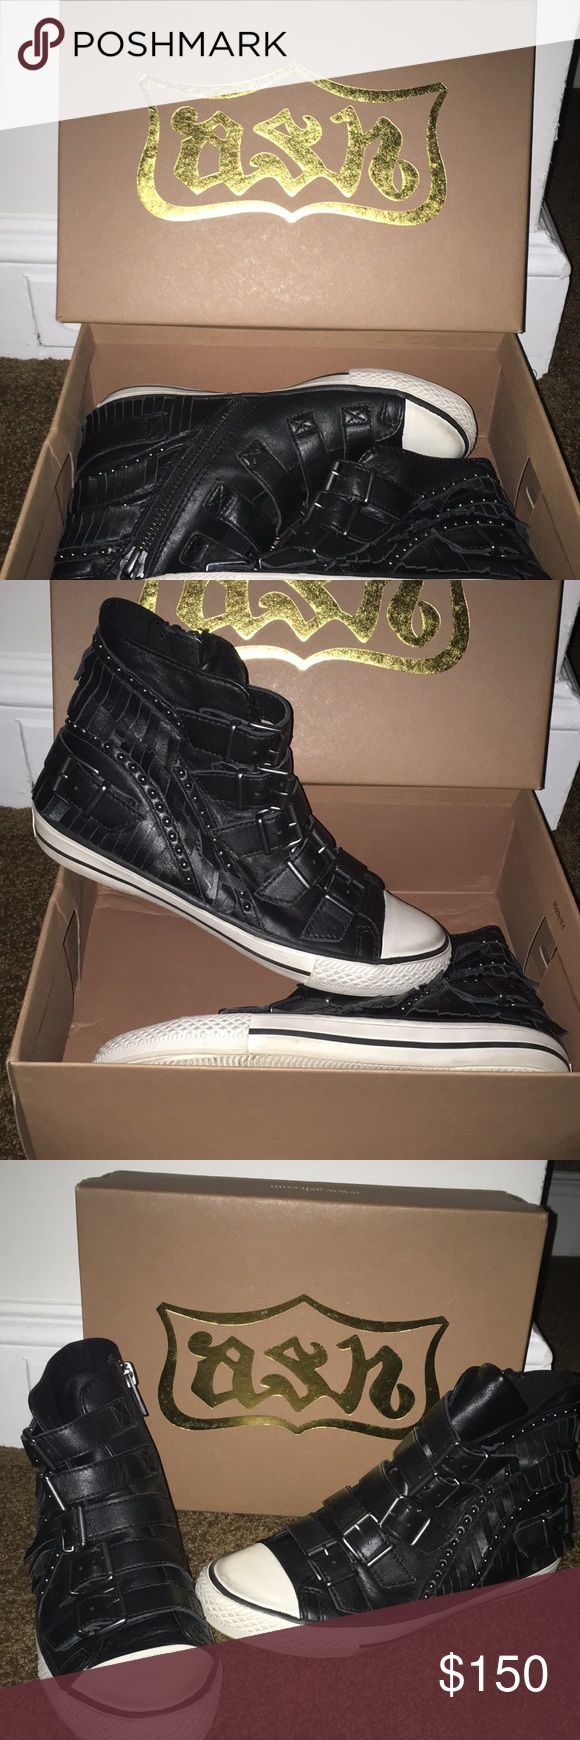 Ash Sneakers Authentic Ash sneakers that have only been worn once. Are in great condition and come in the original box. Ash Shoes Sneakers